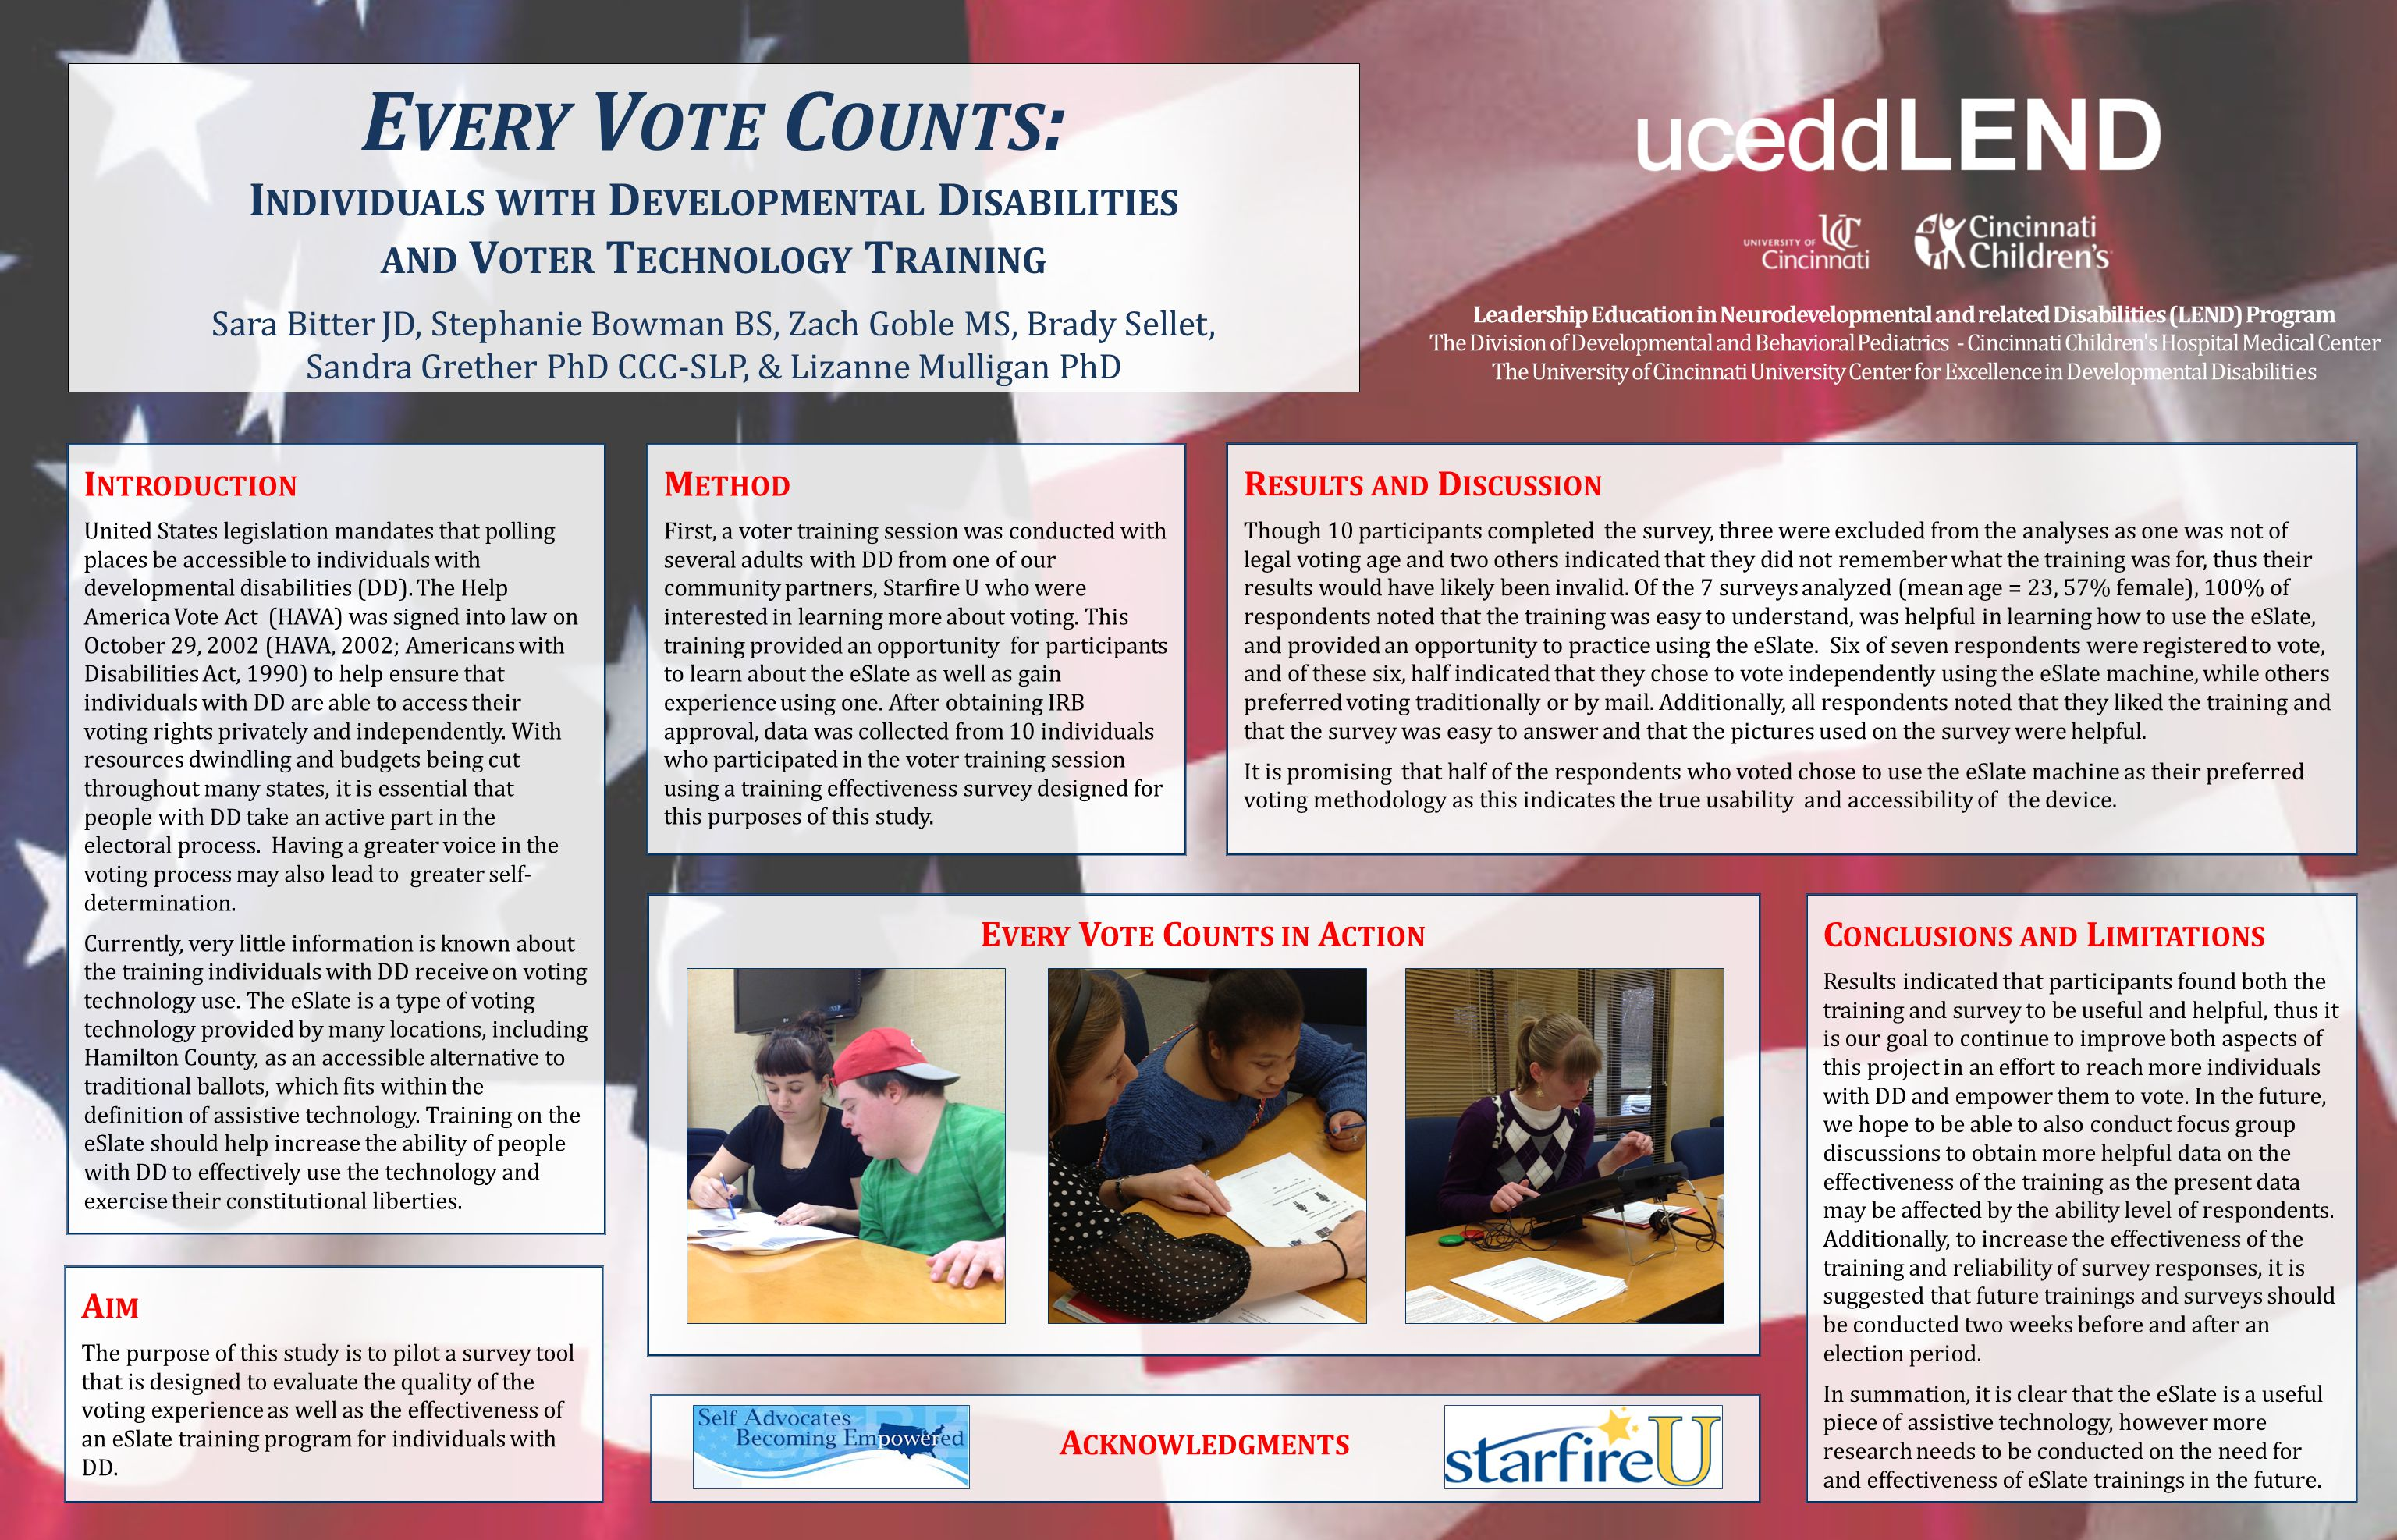 R ESULTS AND D ISCUSSION Though 10 participants completed the survey, three were excluded from the analyses as one was not of legal voting age and two others indicated that they did not remember what the training was for, thus their results would have likely been invalid.